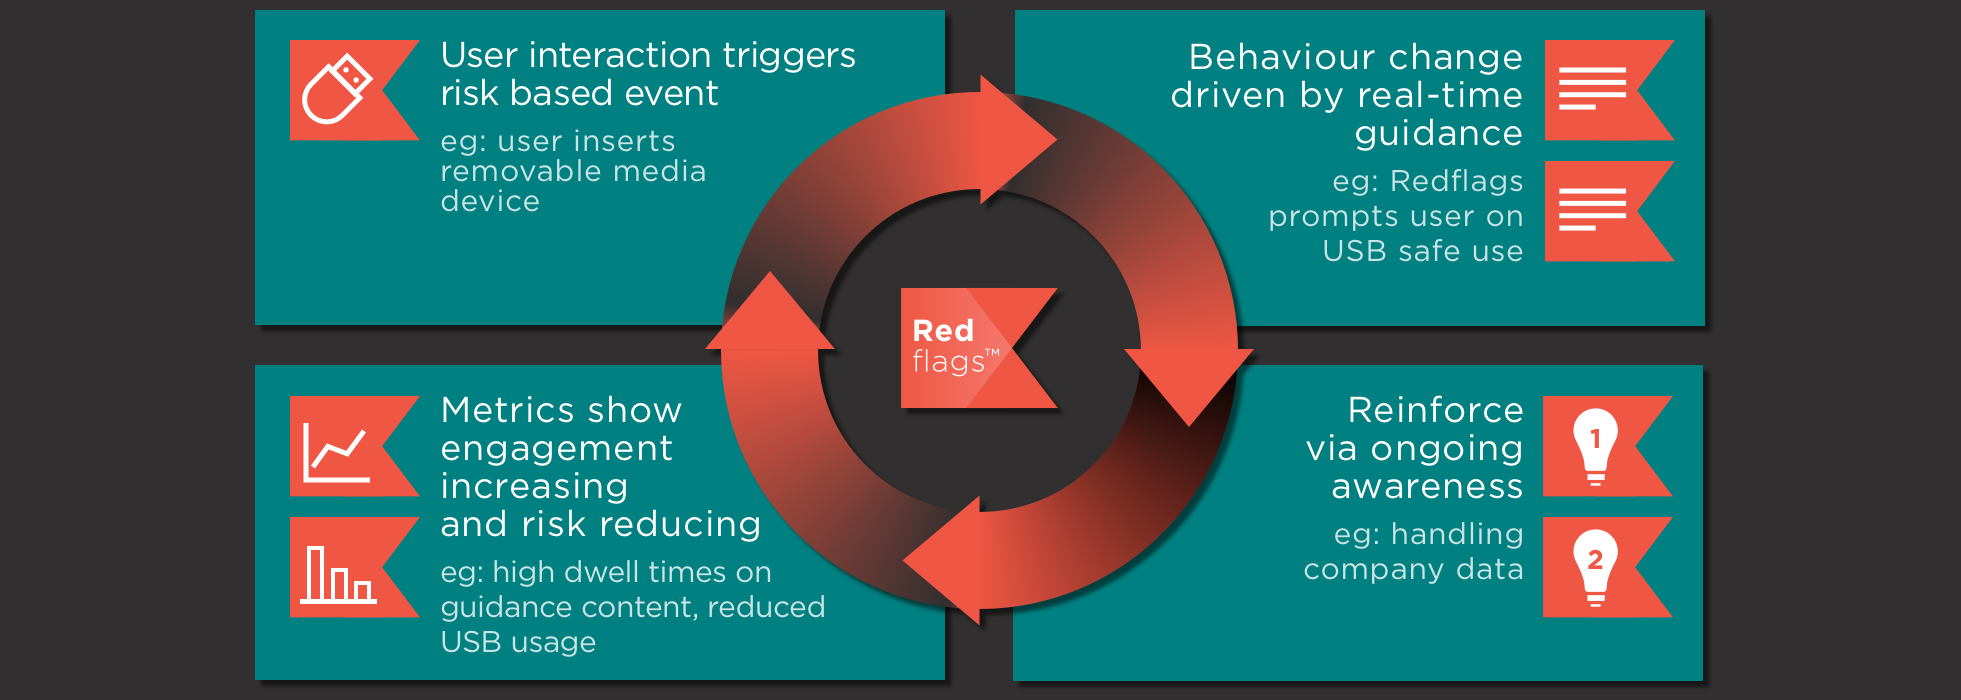 Redflags uniquely real-time security awareness